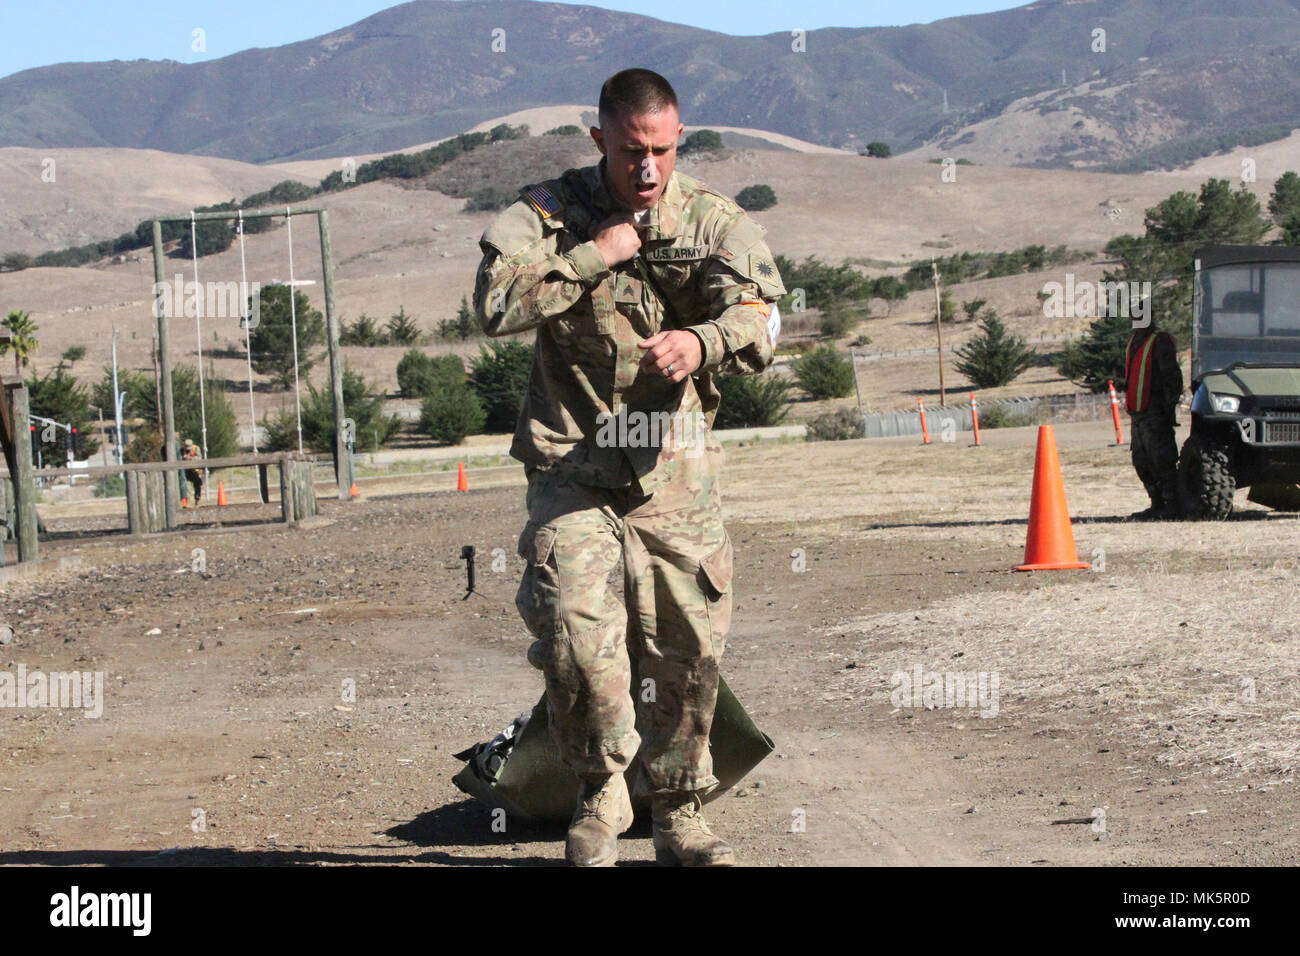 Sgt. Joshua Monday drags a 180-pound medical prop to the obstacle ...